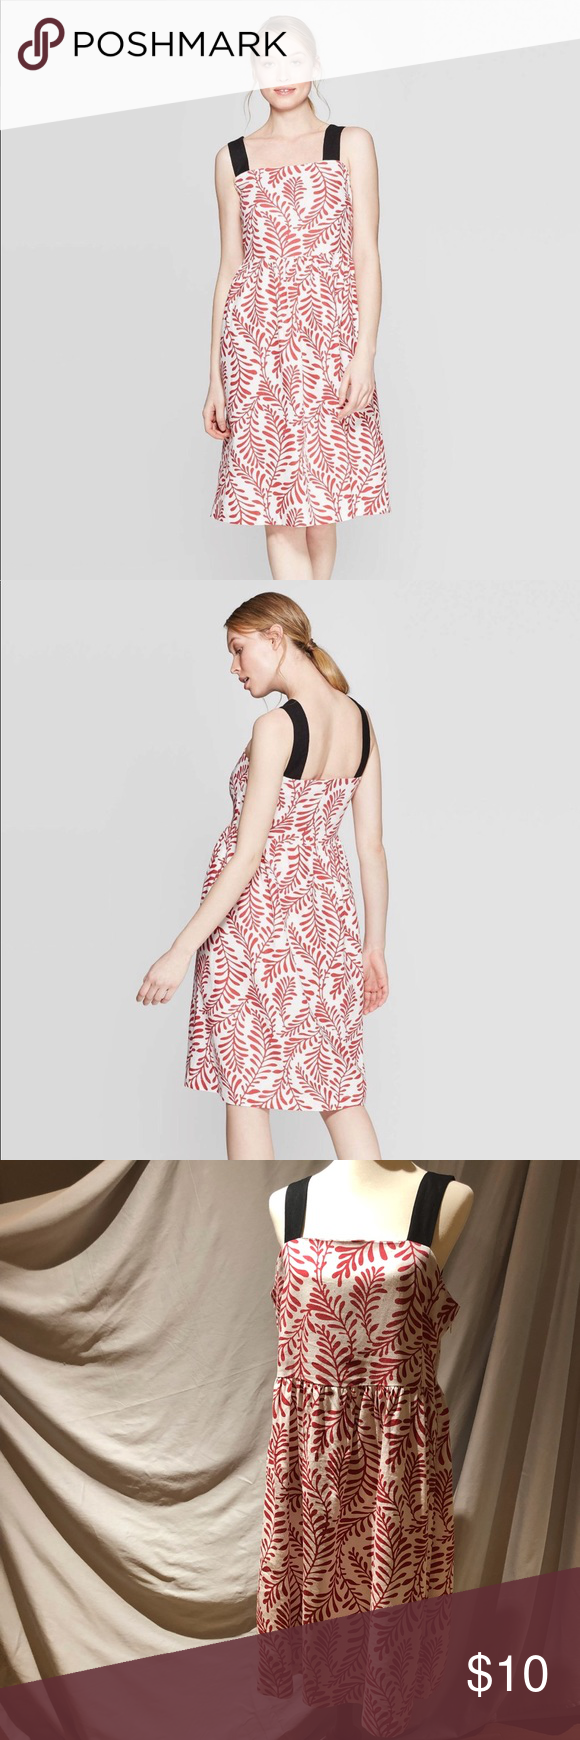 Target Who What Wear Red Leaf Midi Dress Size Med Target Who What Wear Wearing Red Dresses [ 1740 x 580 Pixel ]